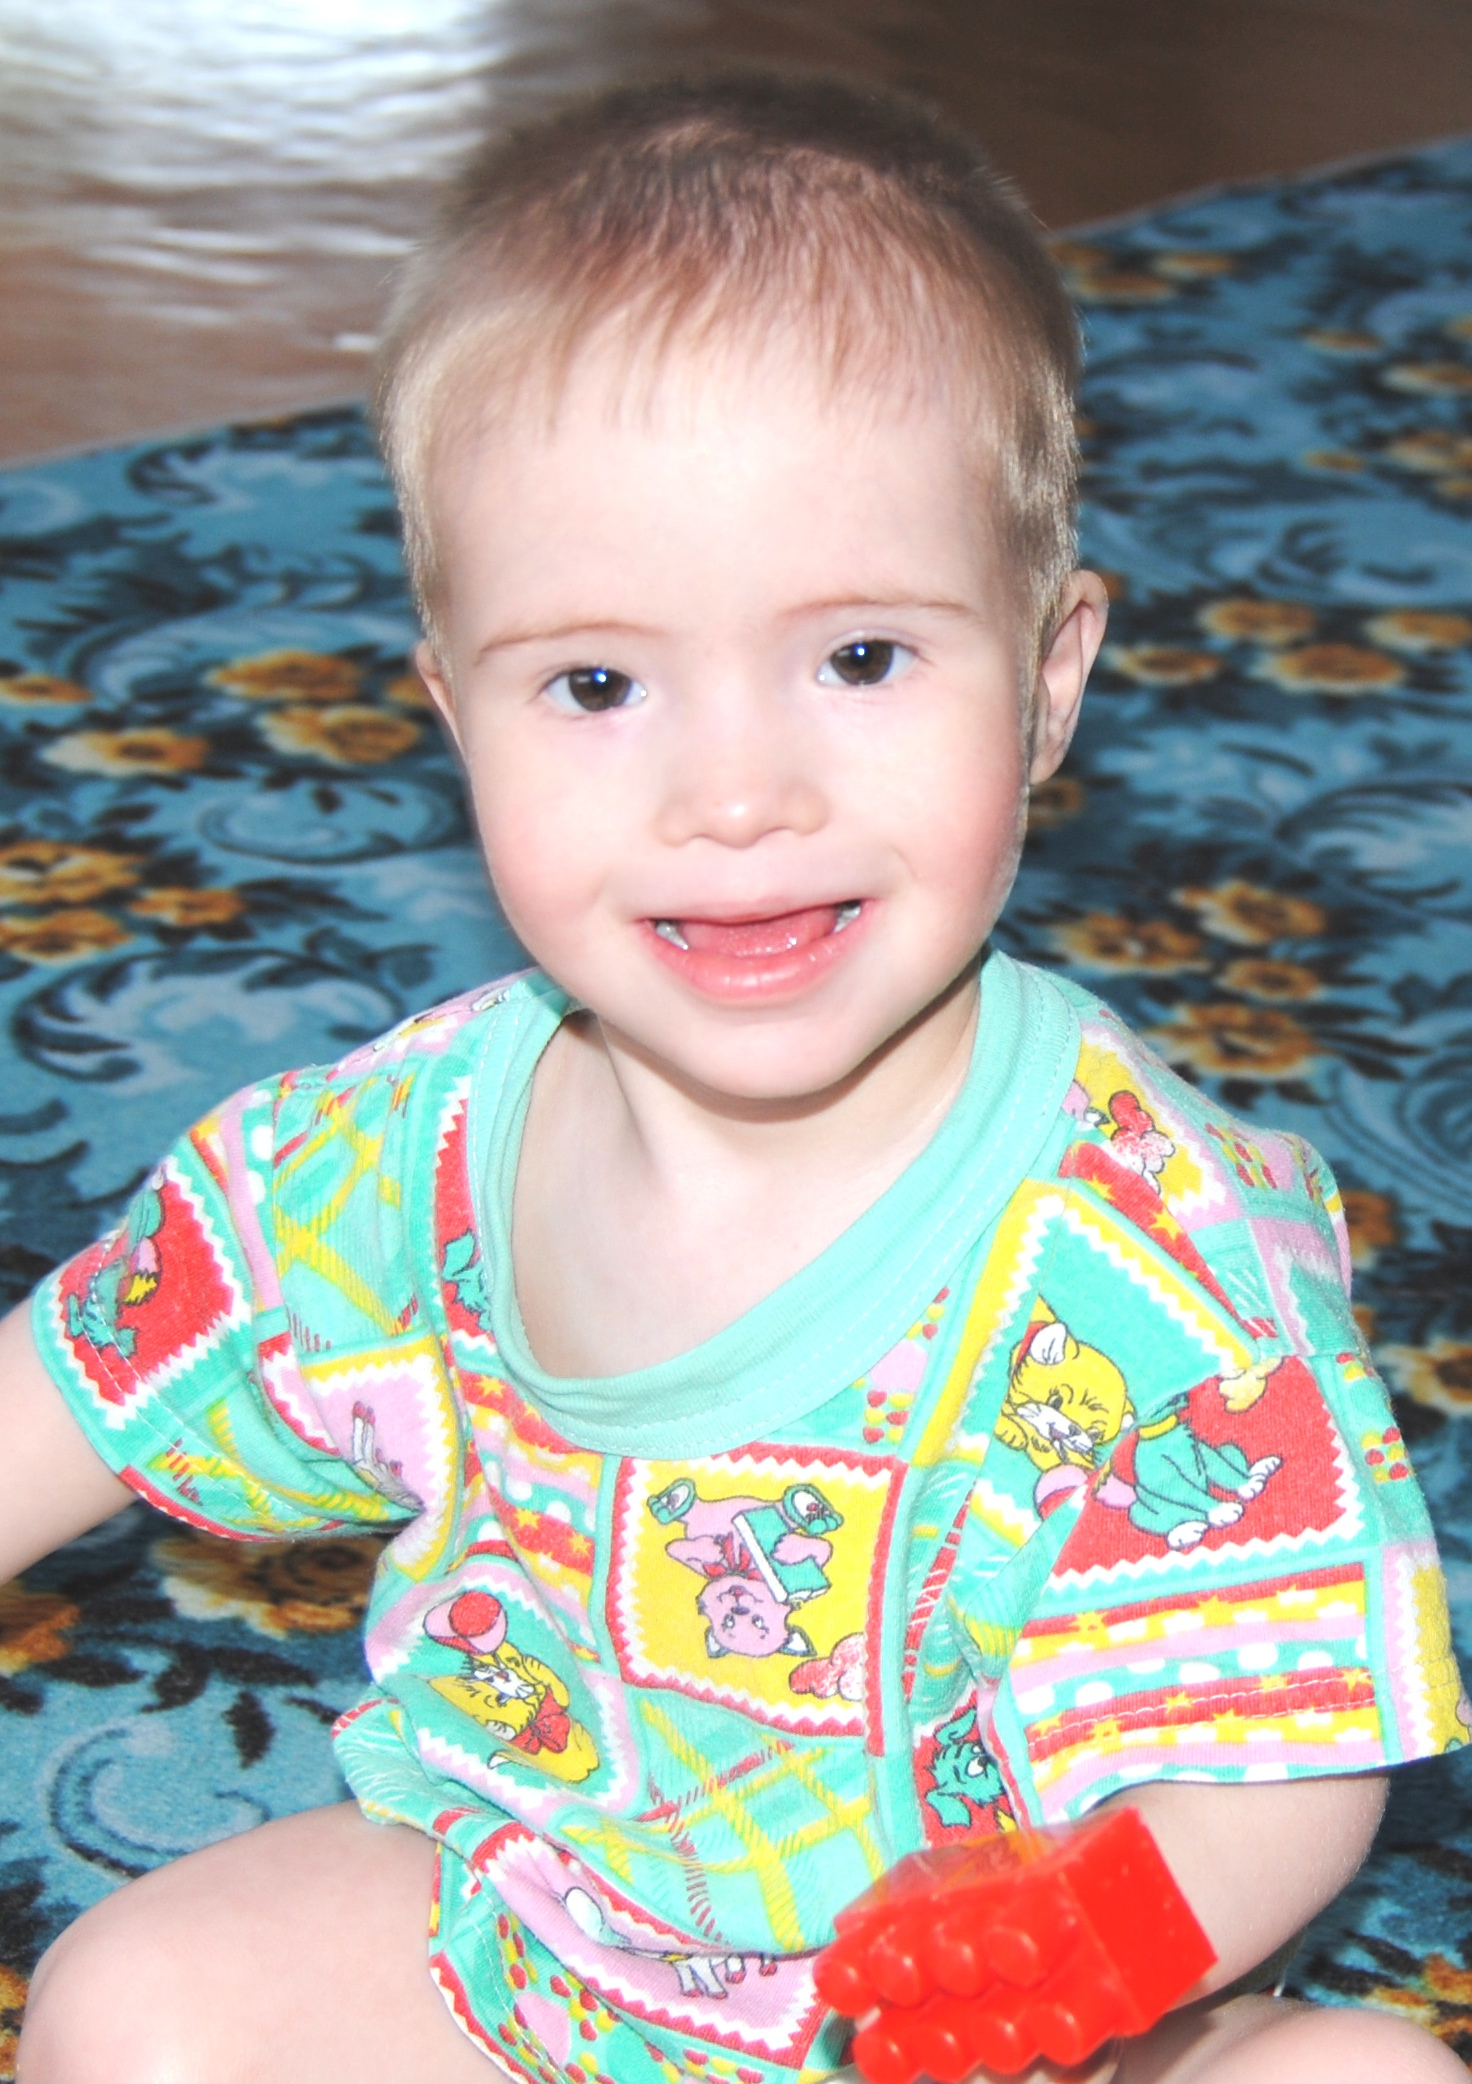 http://reecesrainbow.org/wp-content/uploads/2010/09/michaeljune2011-1-cropped.jpg